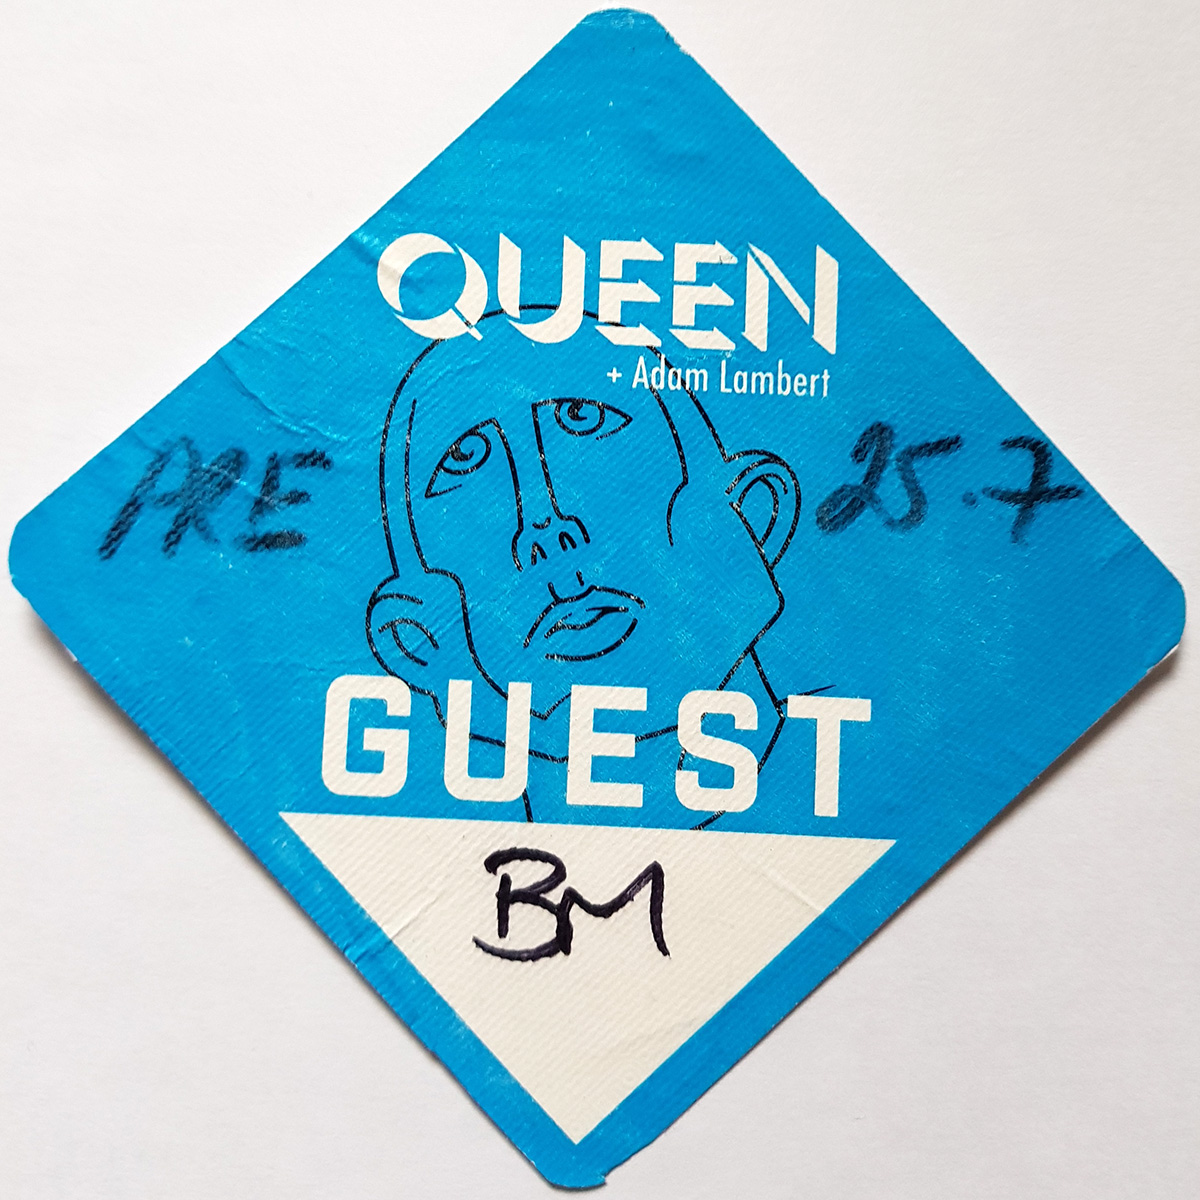 Boston 25.07.2017 guest pass